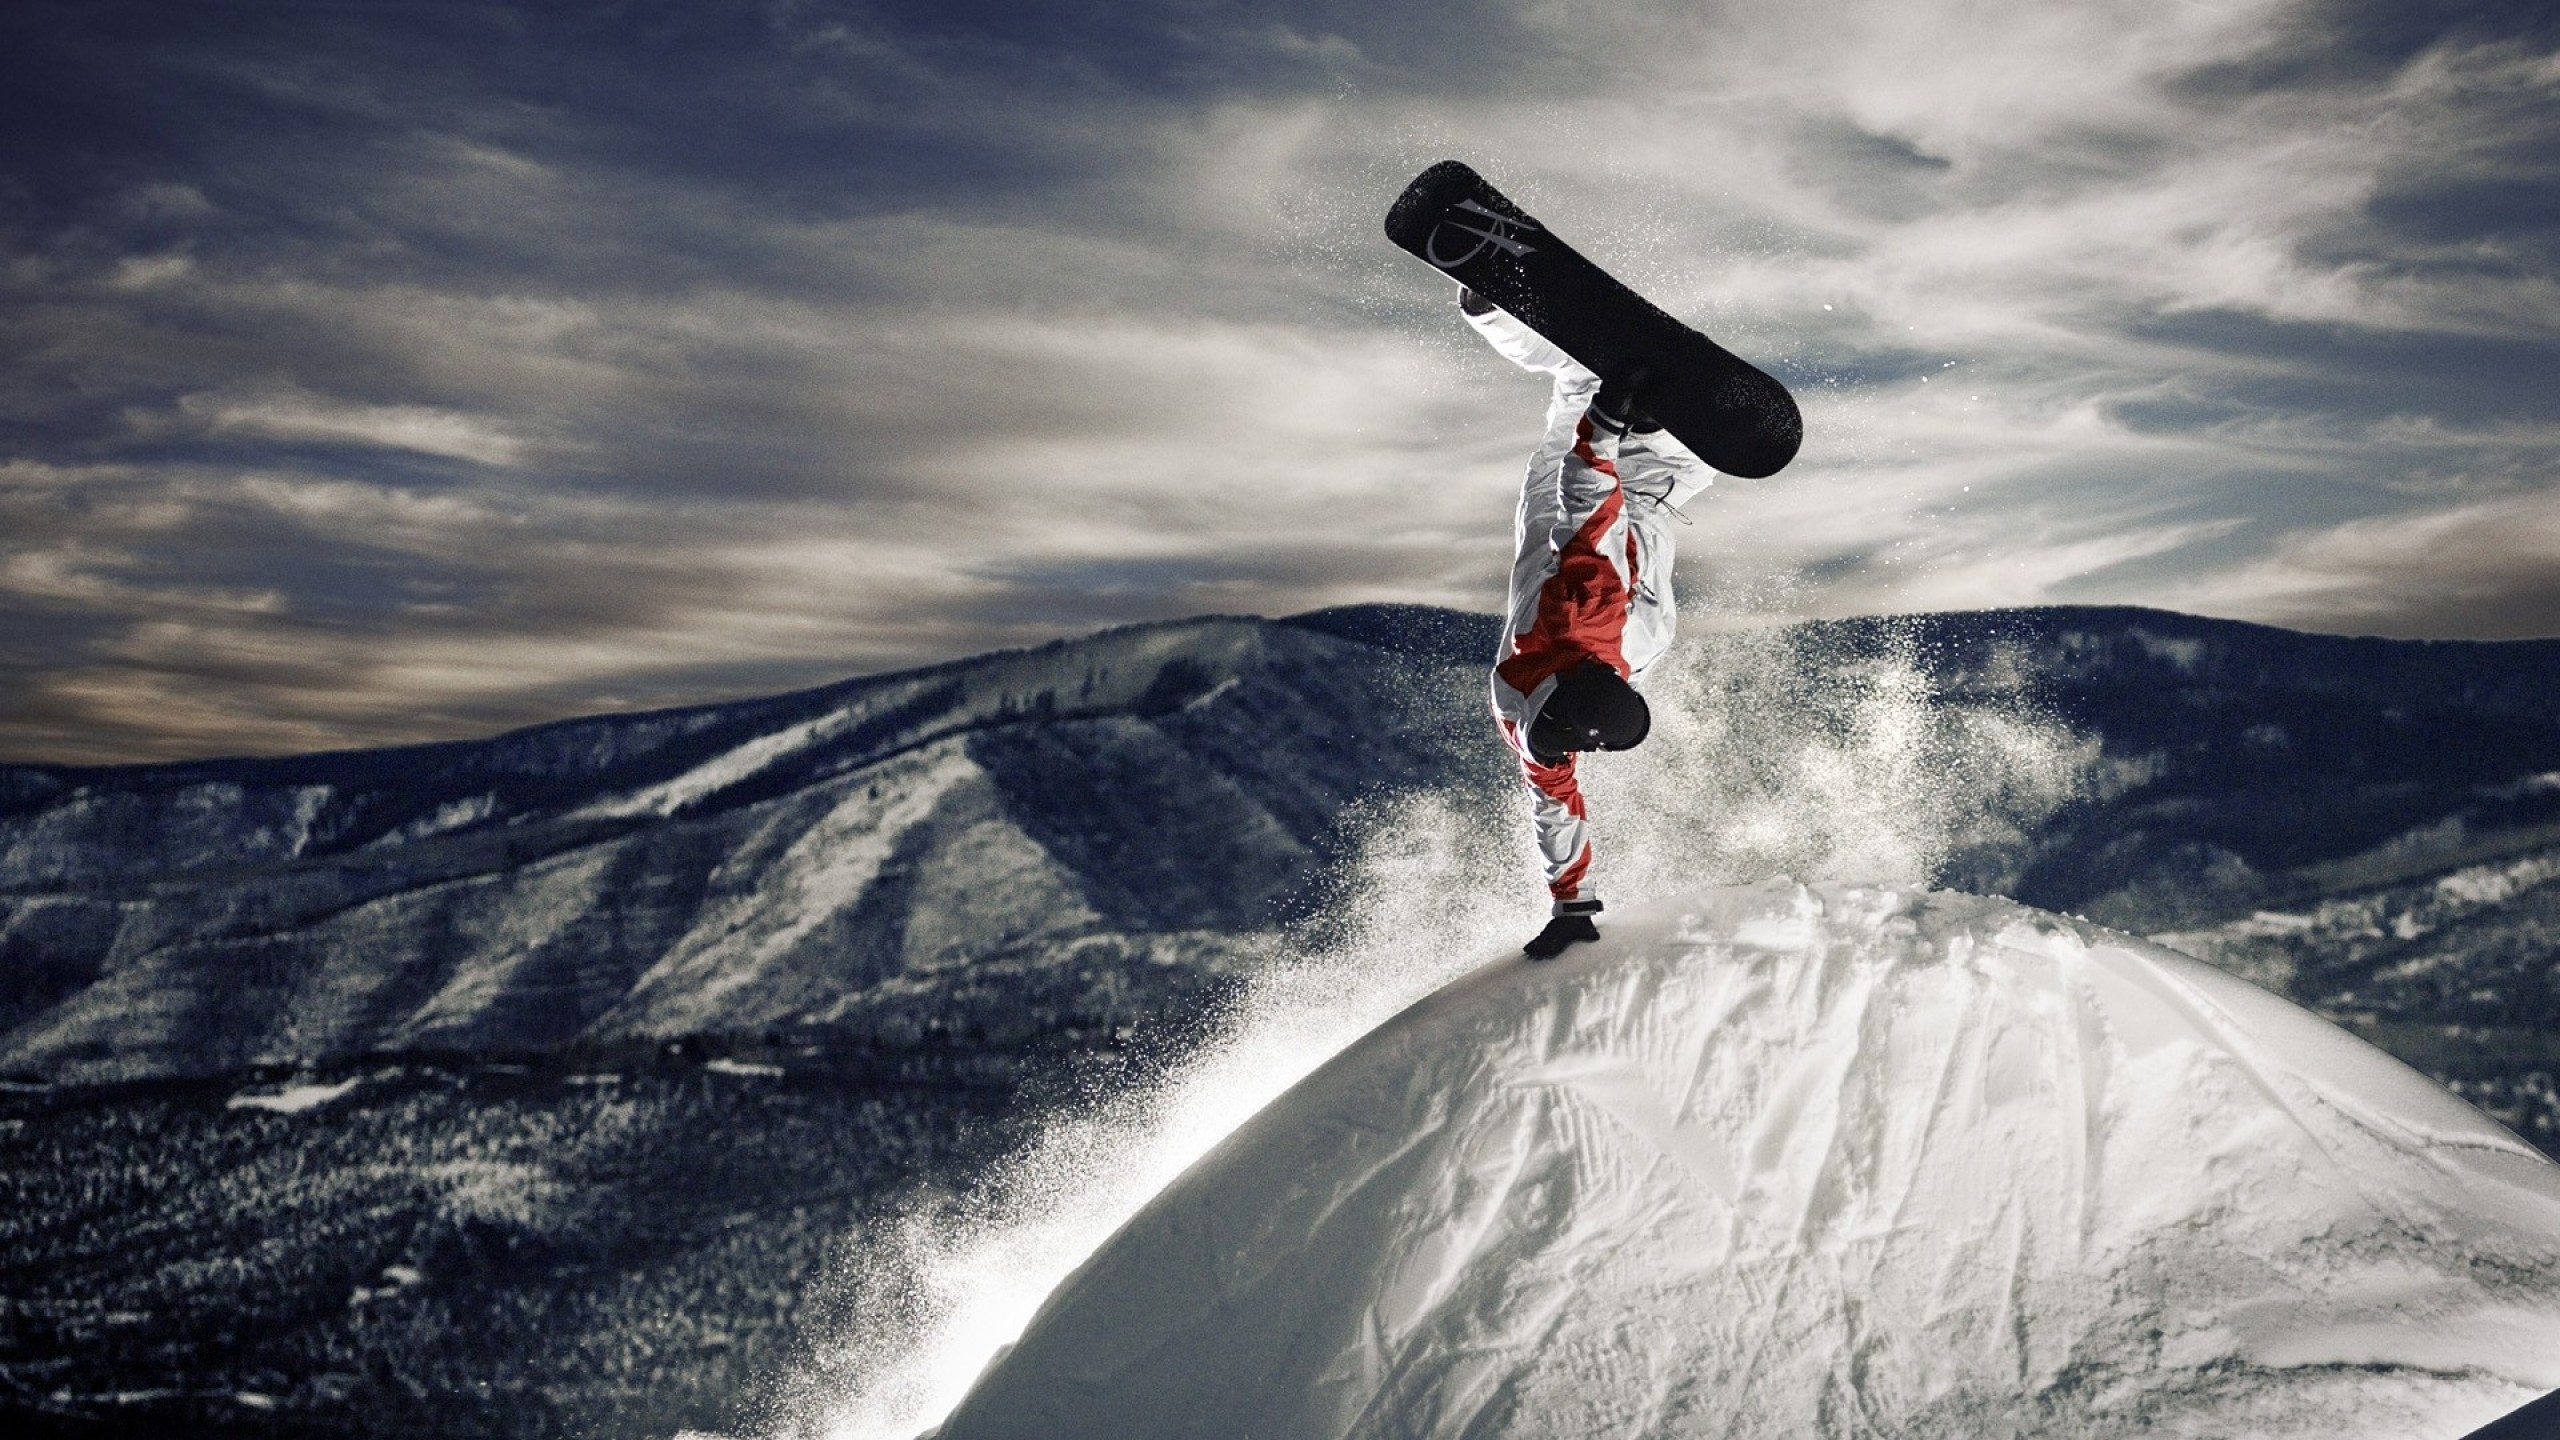 Snowboarder - stunt on top of a mountain